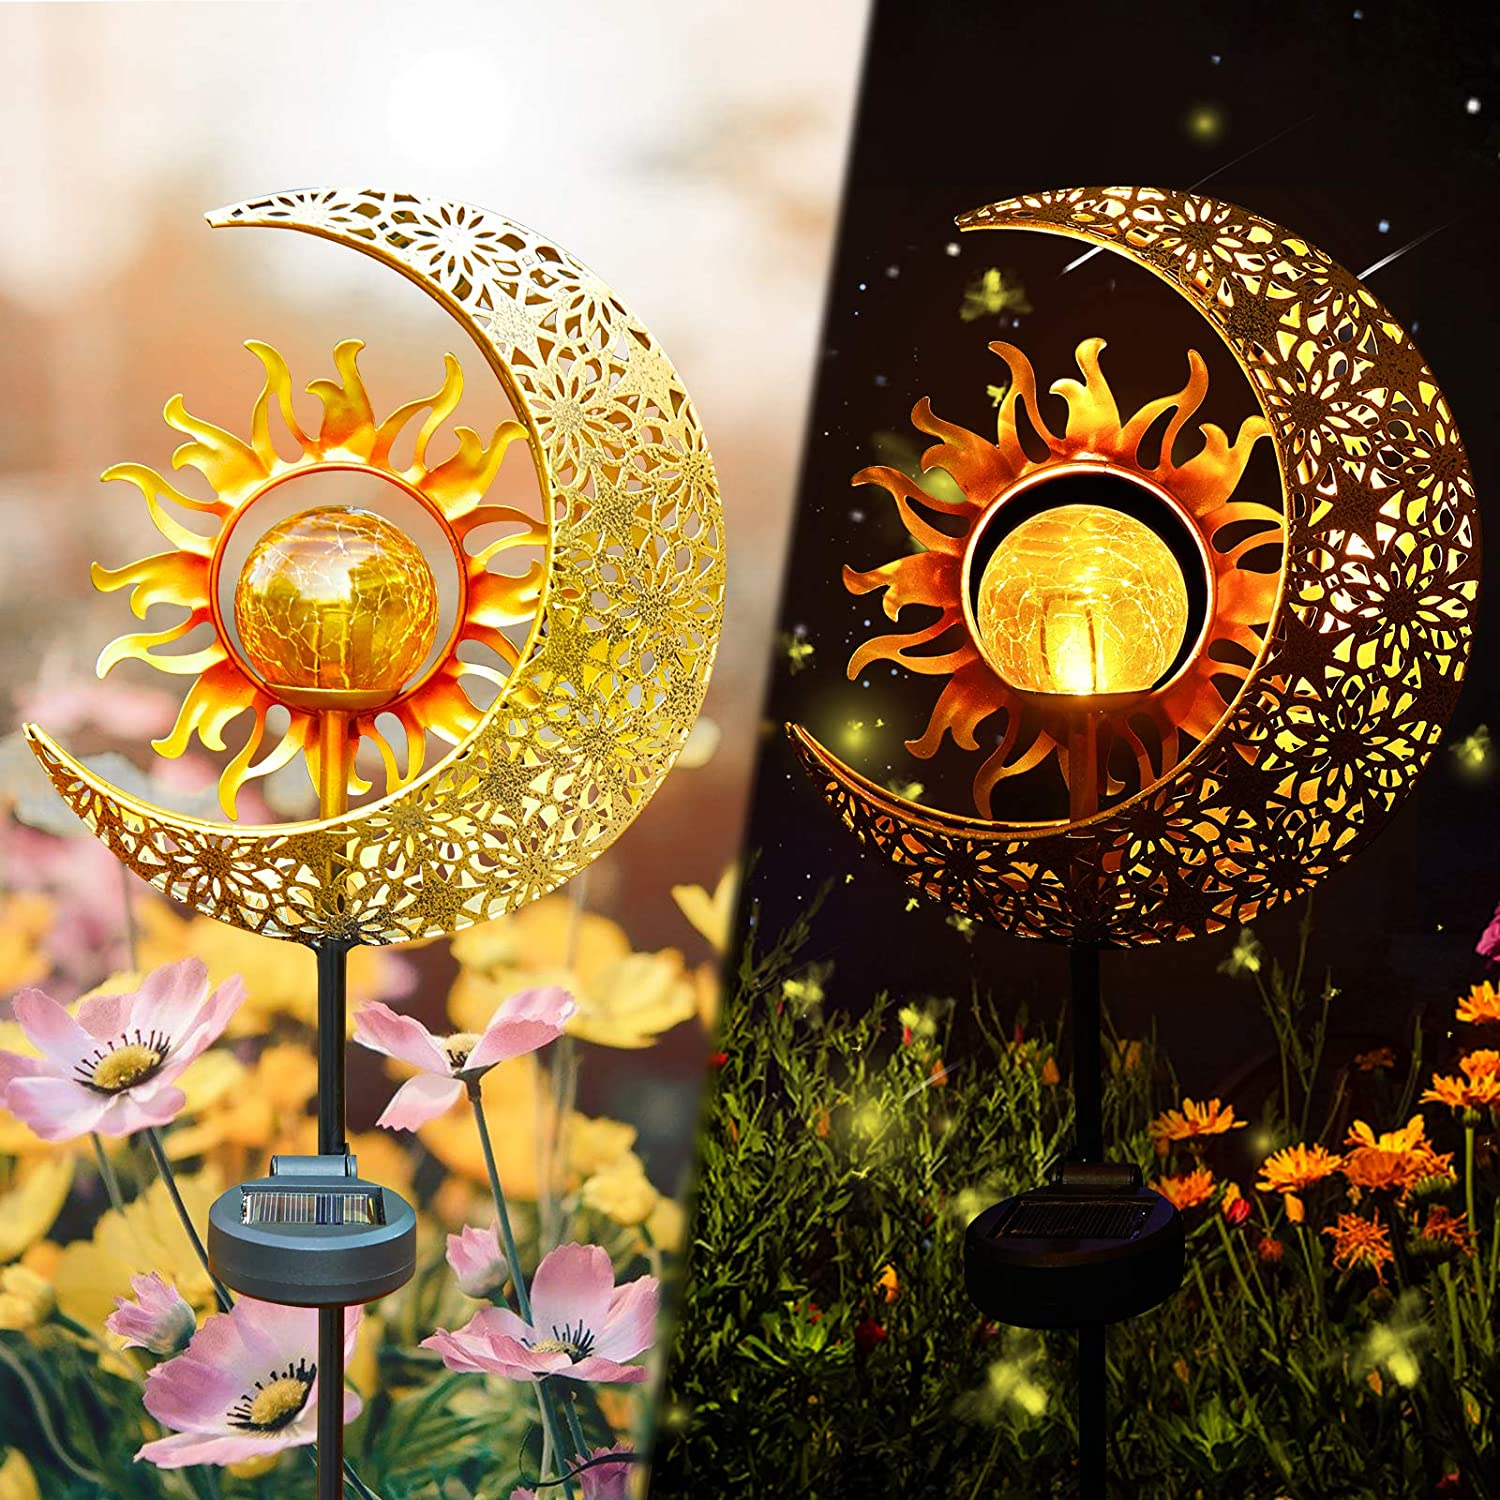 LICKLIP Garden Solar Lights Outdoor Decorative, Sun & Moon Crackle Glass Globe Metal Stake Light, Waterproof Warm White LED Light, Decorations for Pathway Lawn Patio Courtyard Backyard (1 Pack)